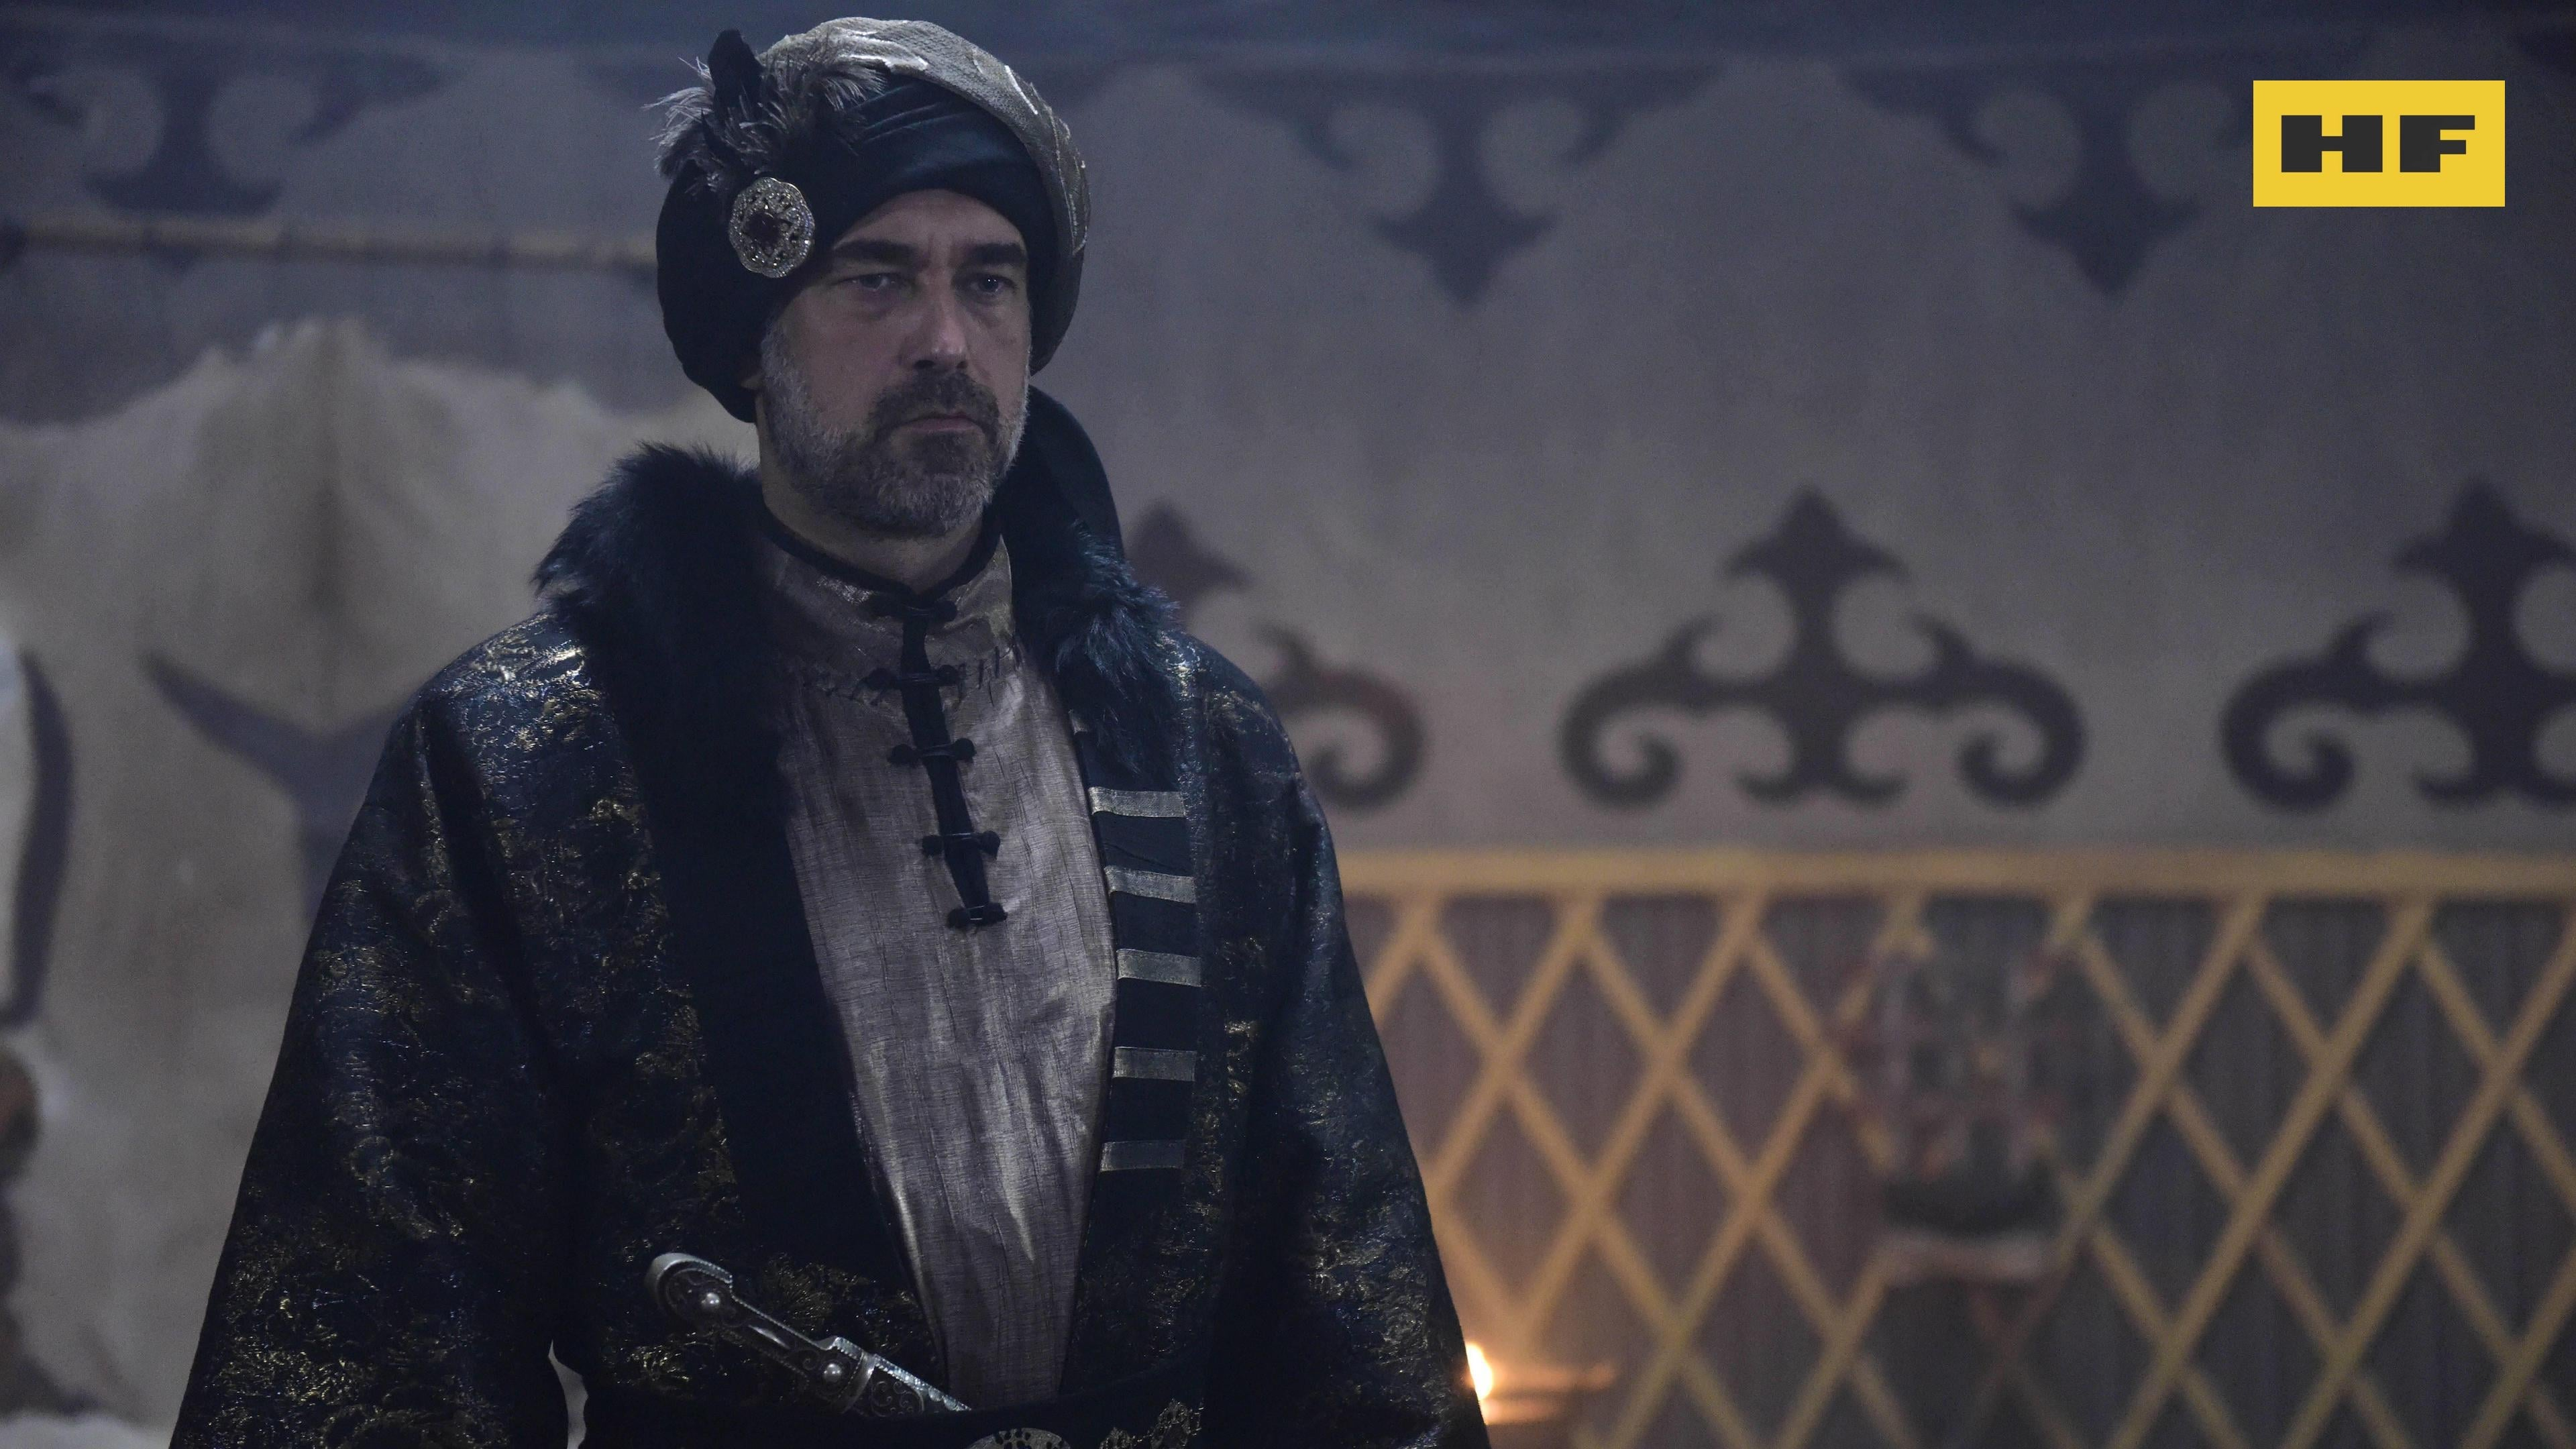 Dirilis Ertugrul Season 3 Episode 28